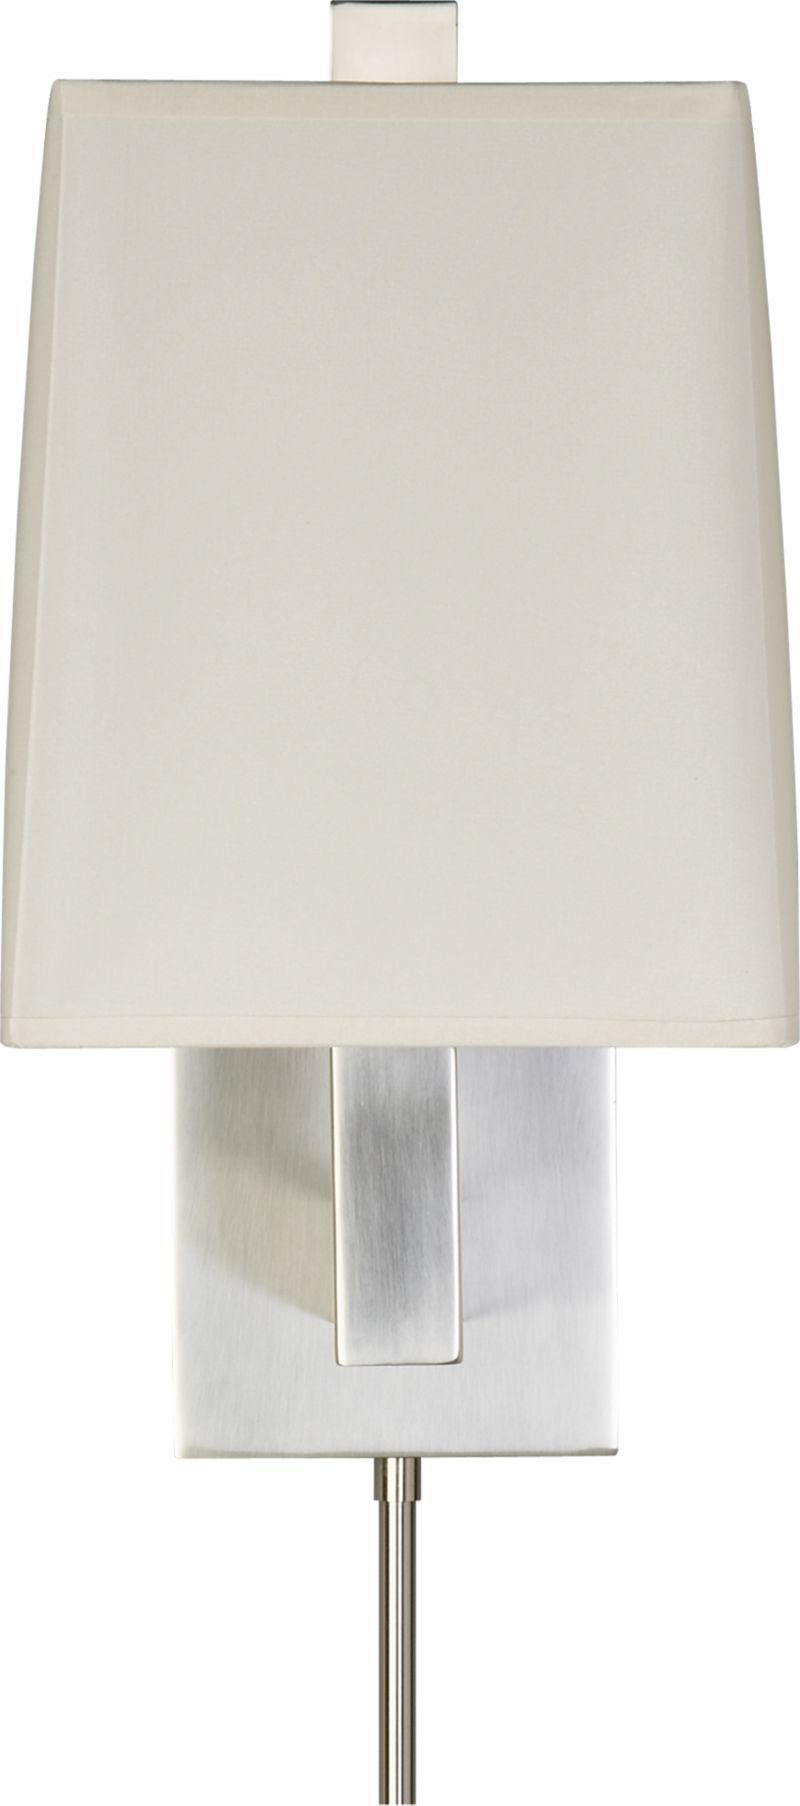 Led wall sconce lighting silver wall sconces pinterest wall